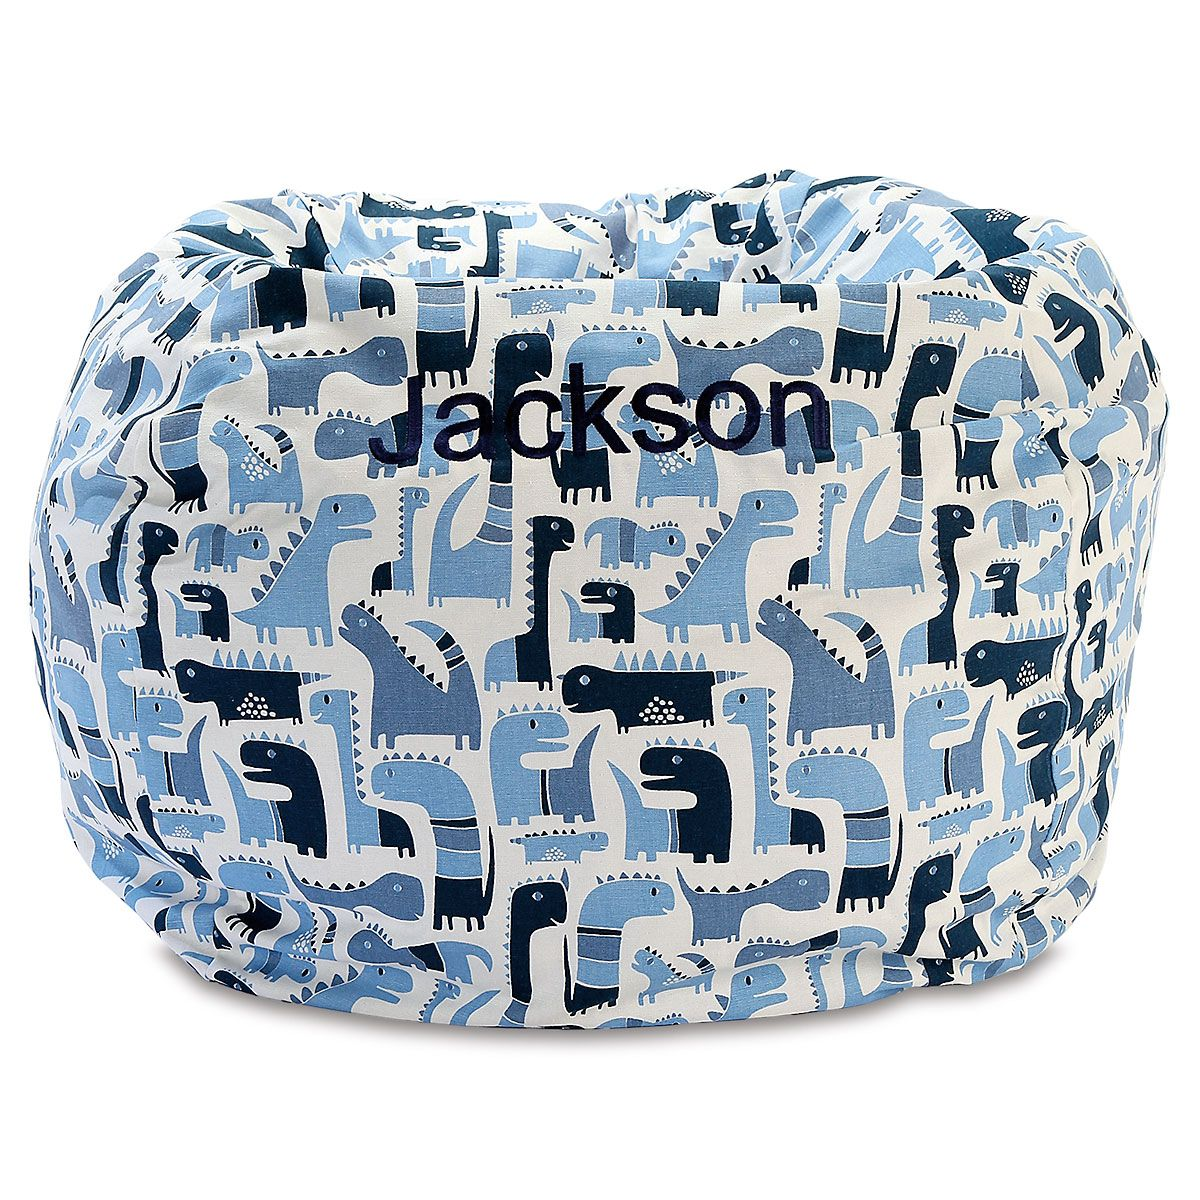 Giant Life Personalized Bean Bag Chair